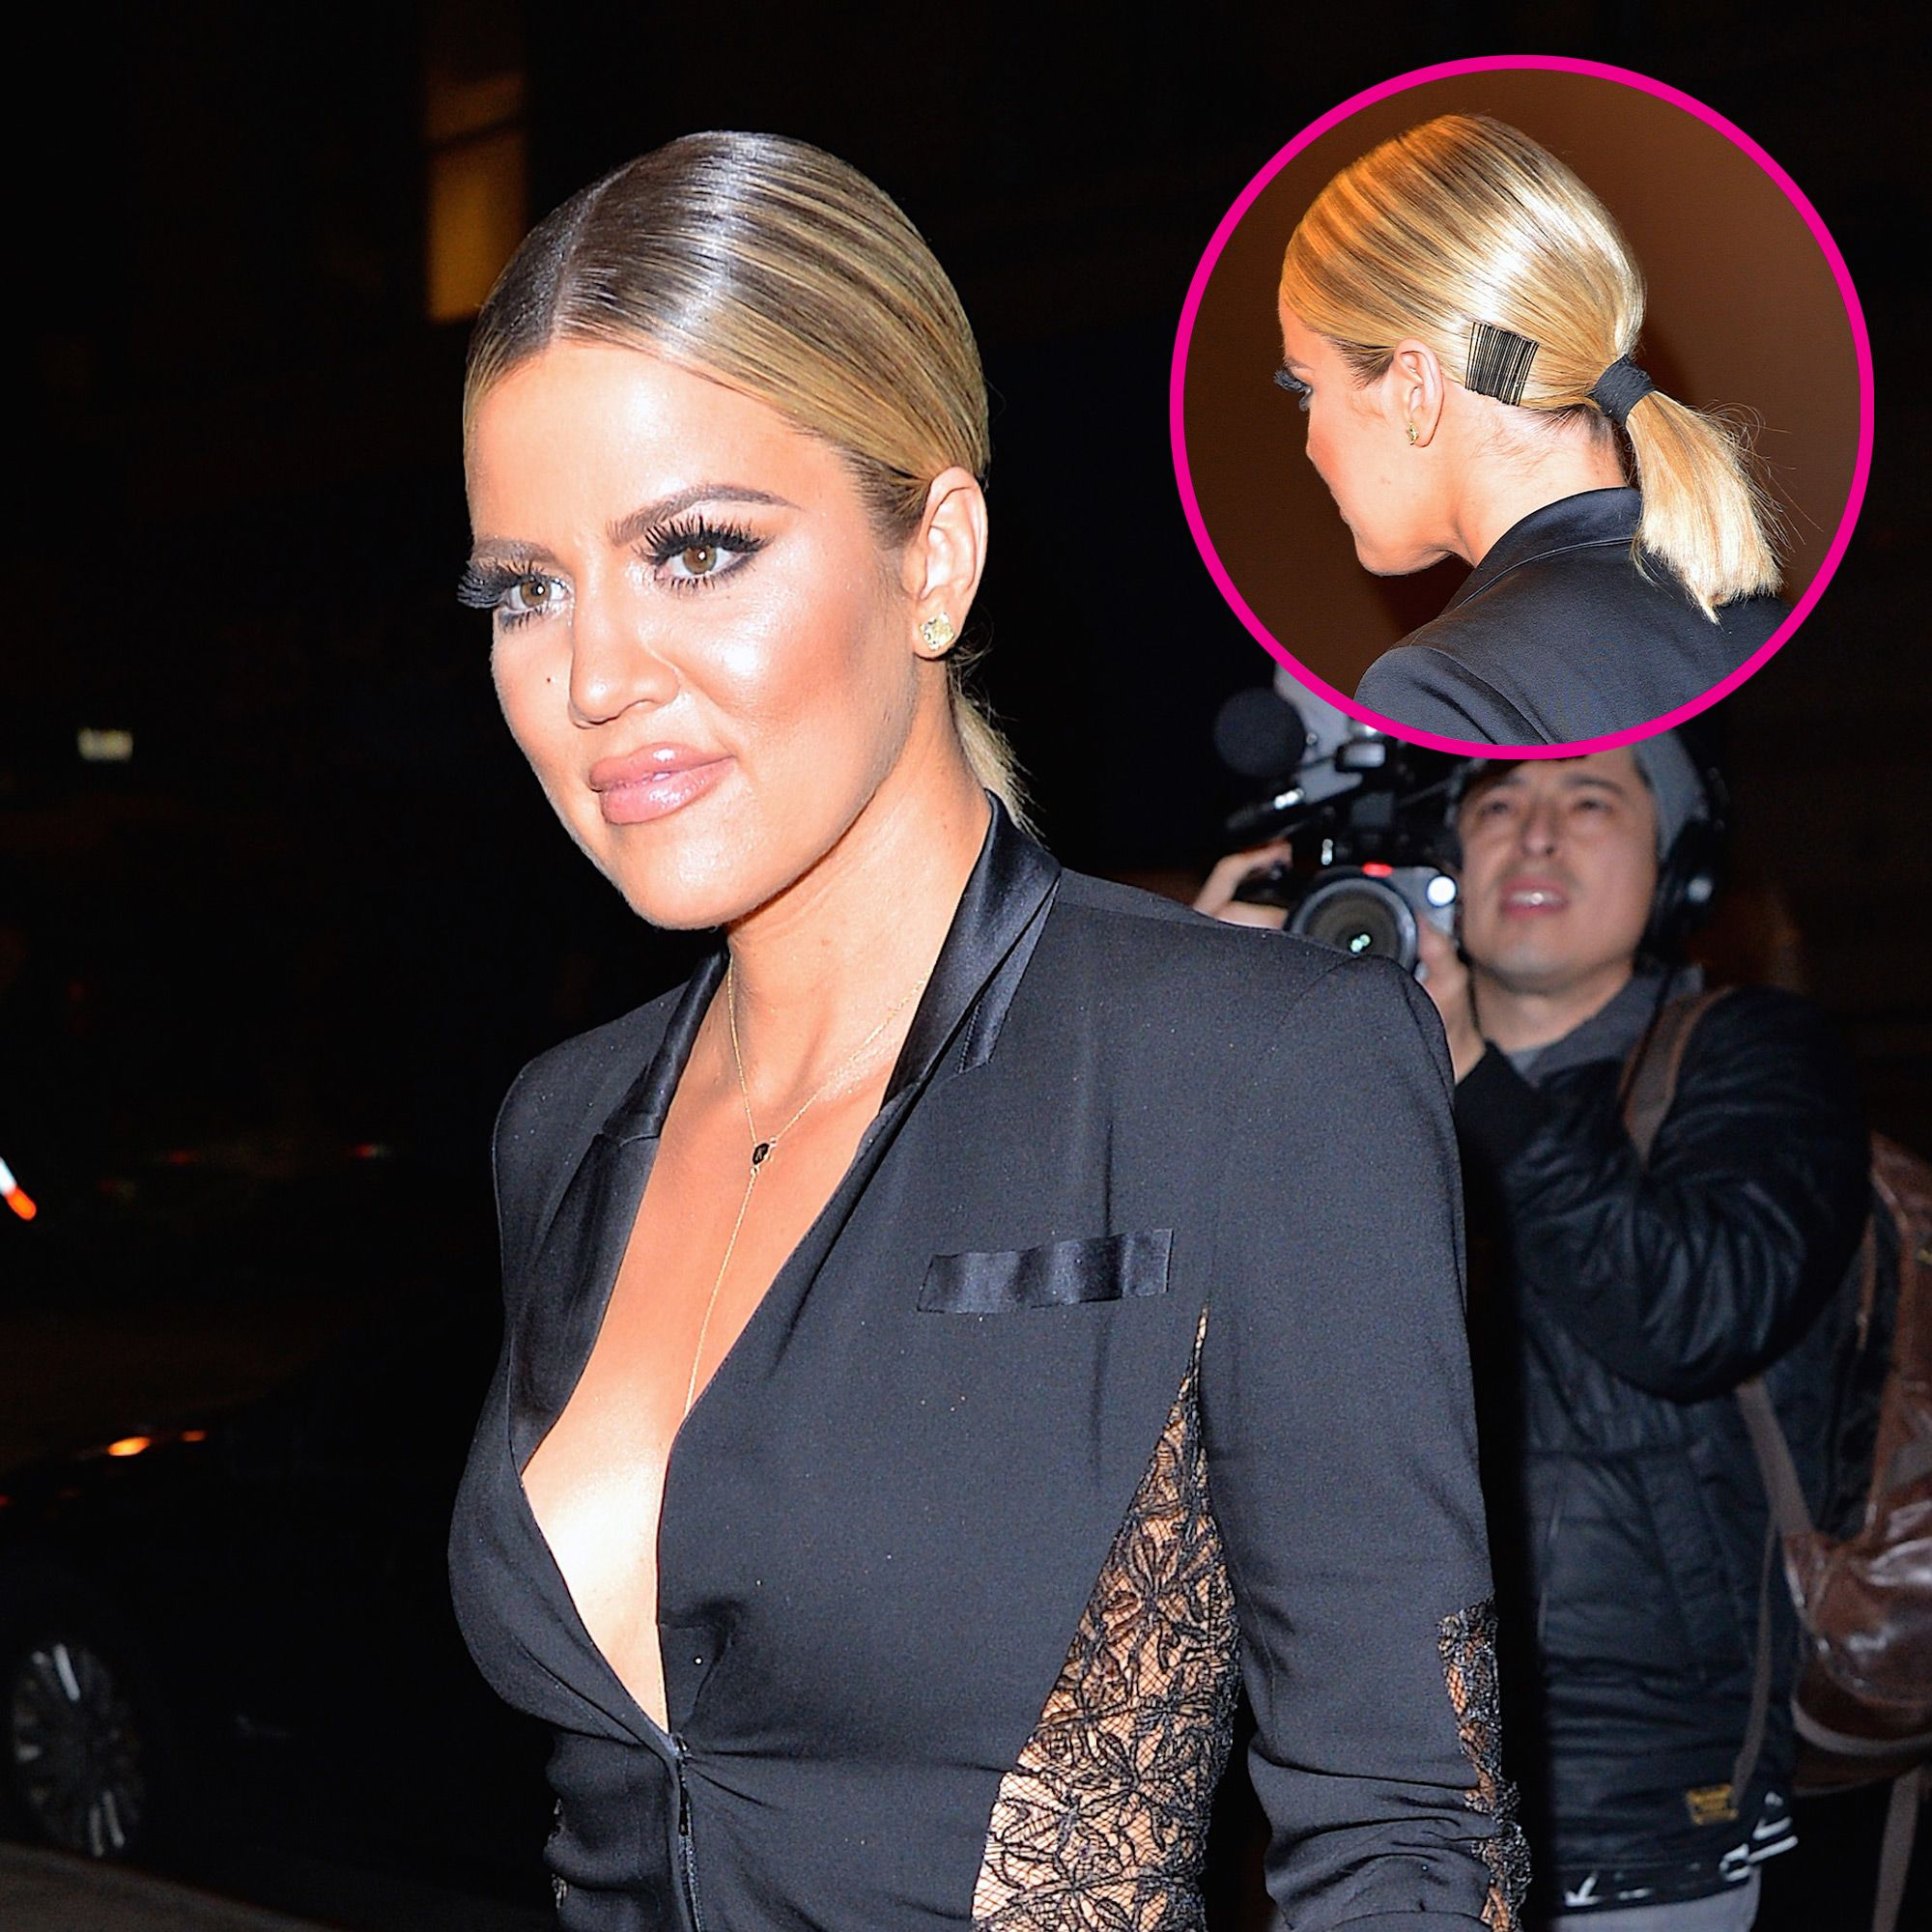 Khloe Kardashian Hairstyles Khloe Wore Bobby Pins In Her Hair